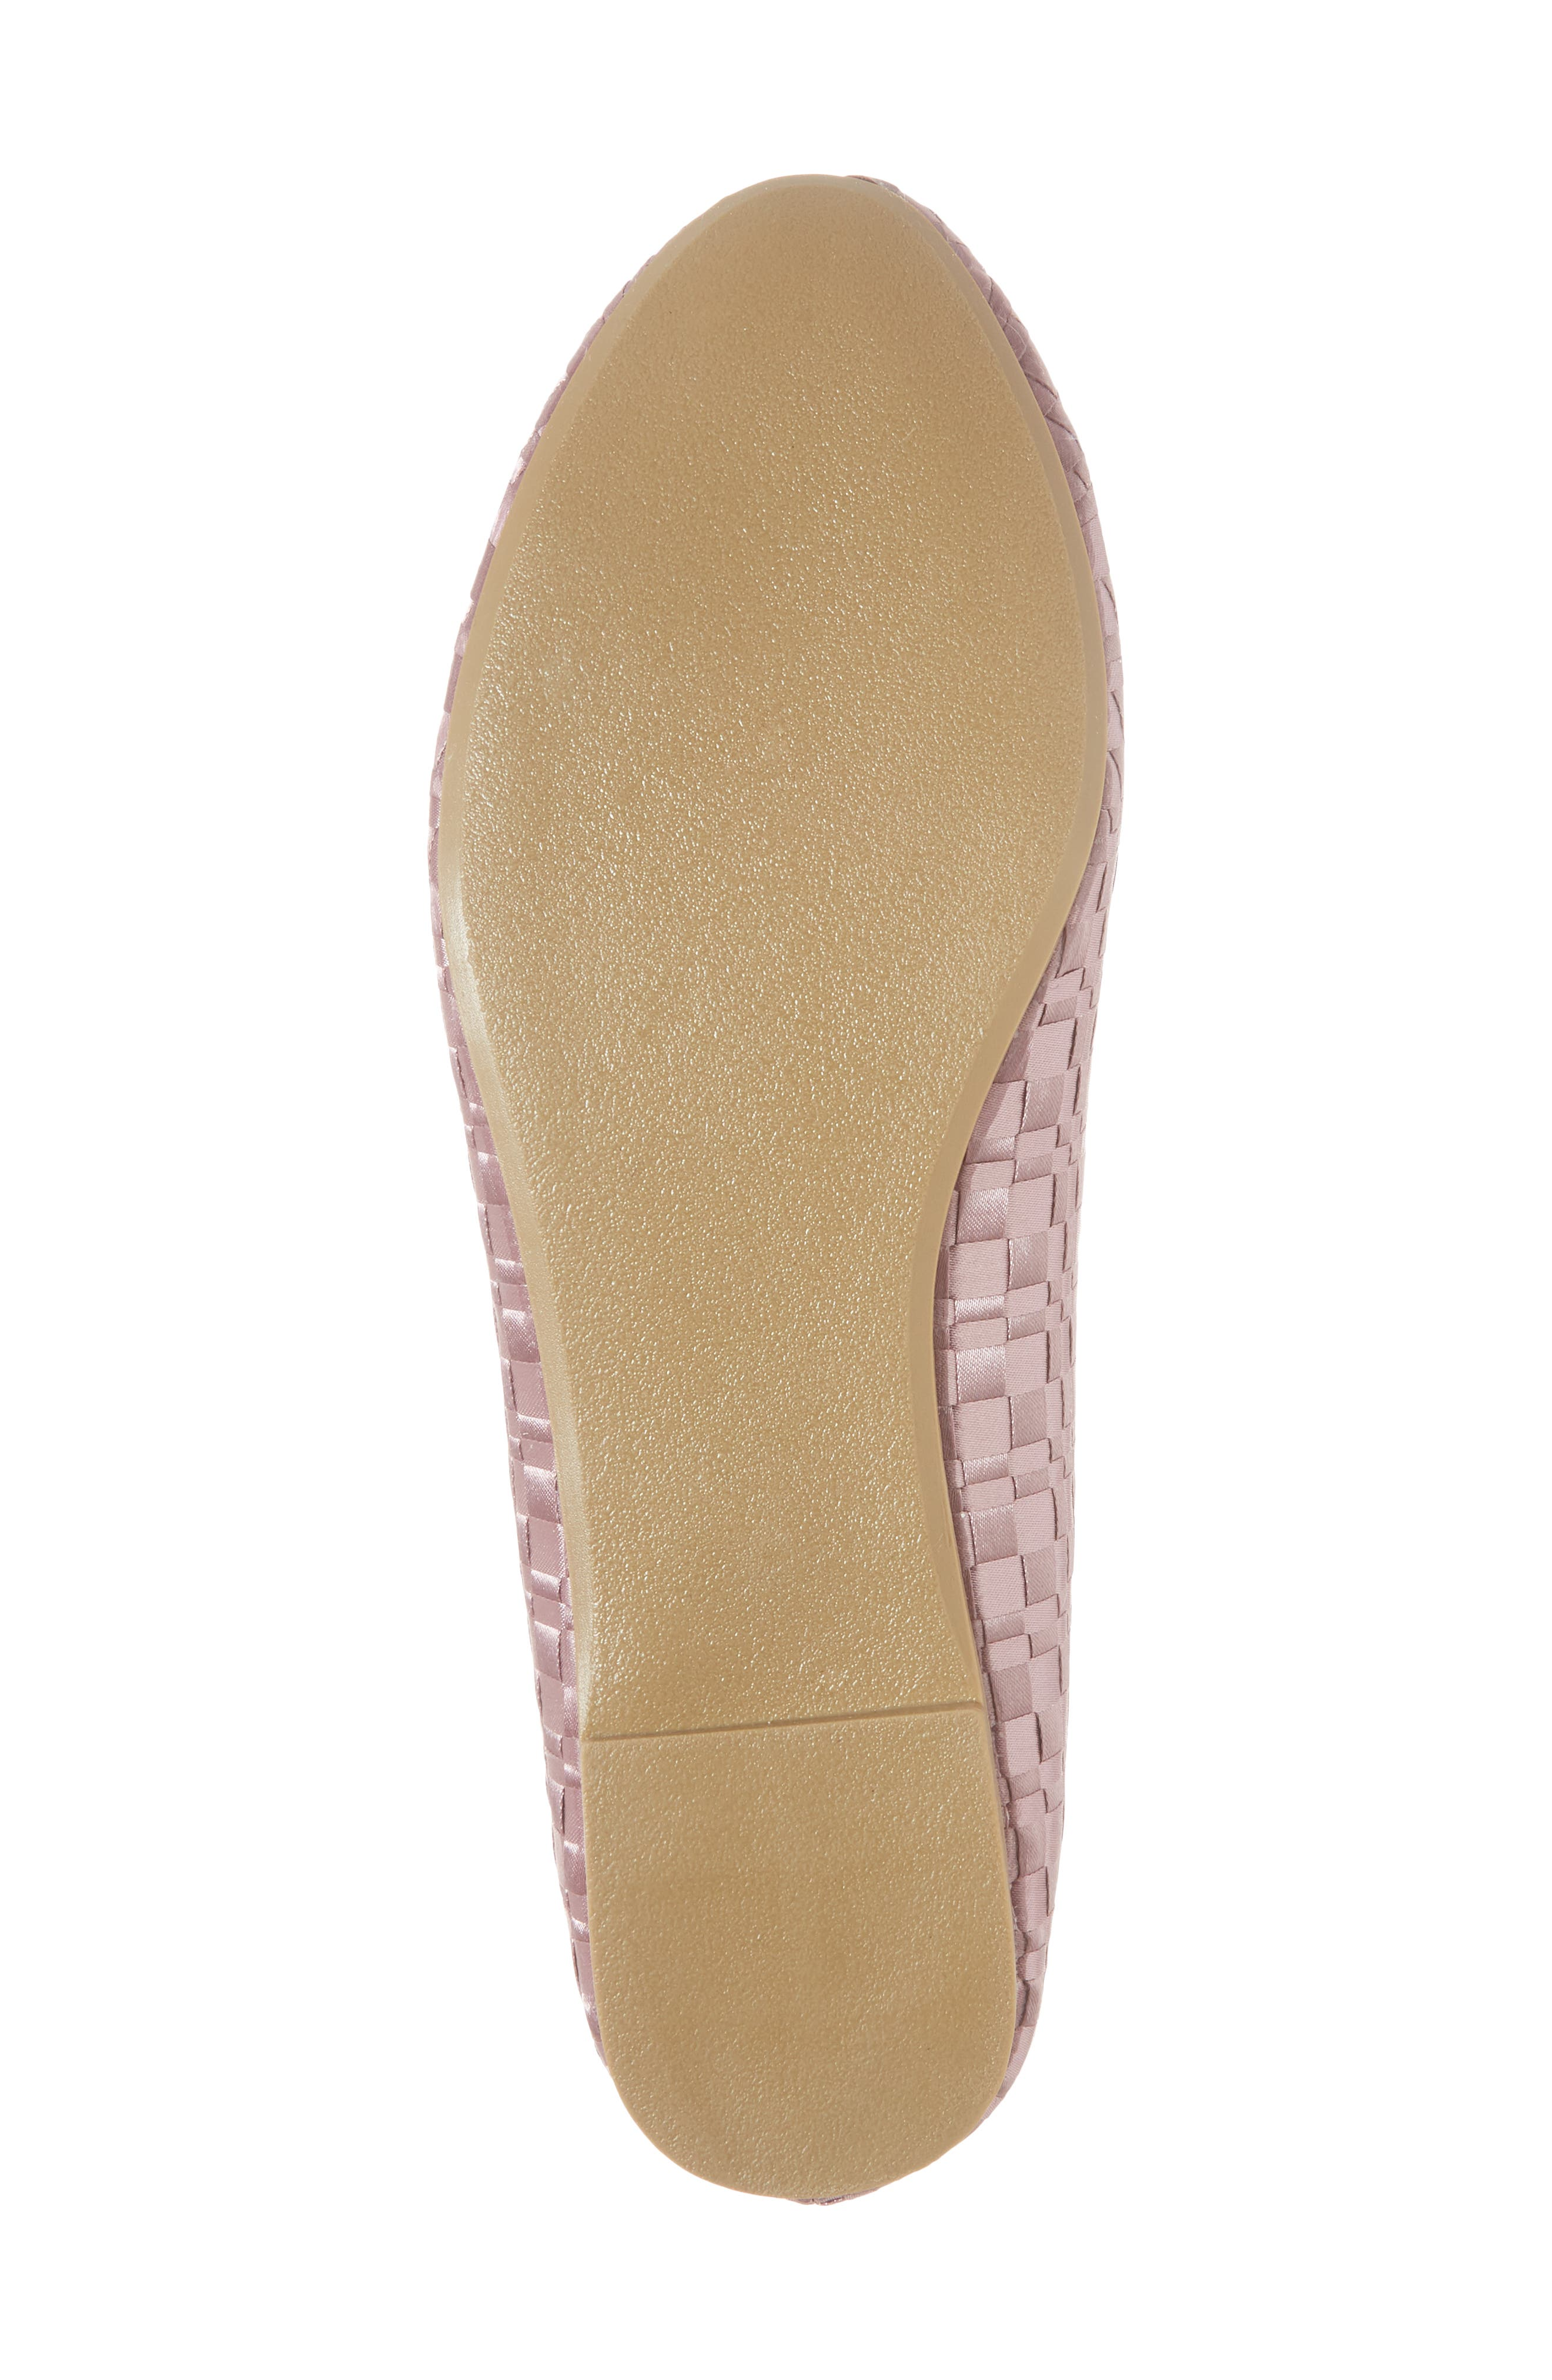 Sasha Textured Woven Loafer,                             Alternate thumbnail 6, color,                             Pink